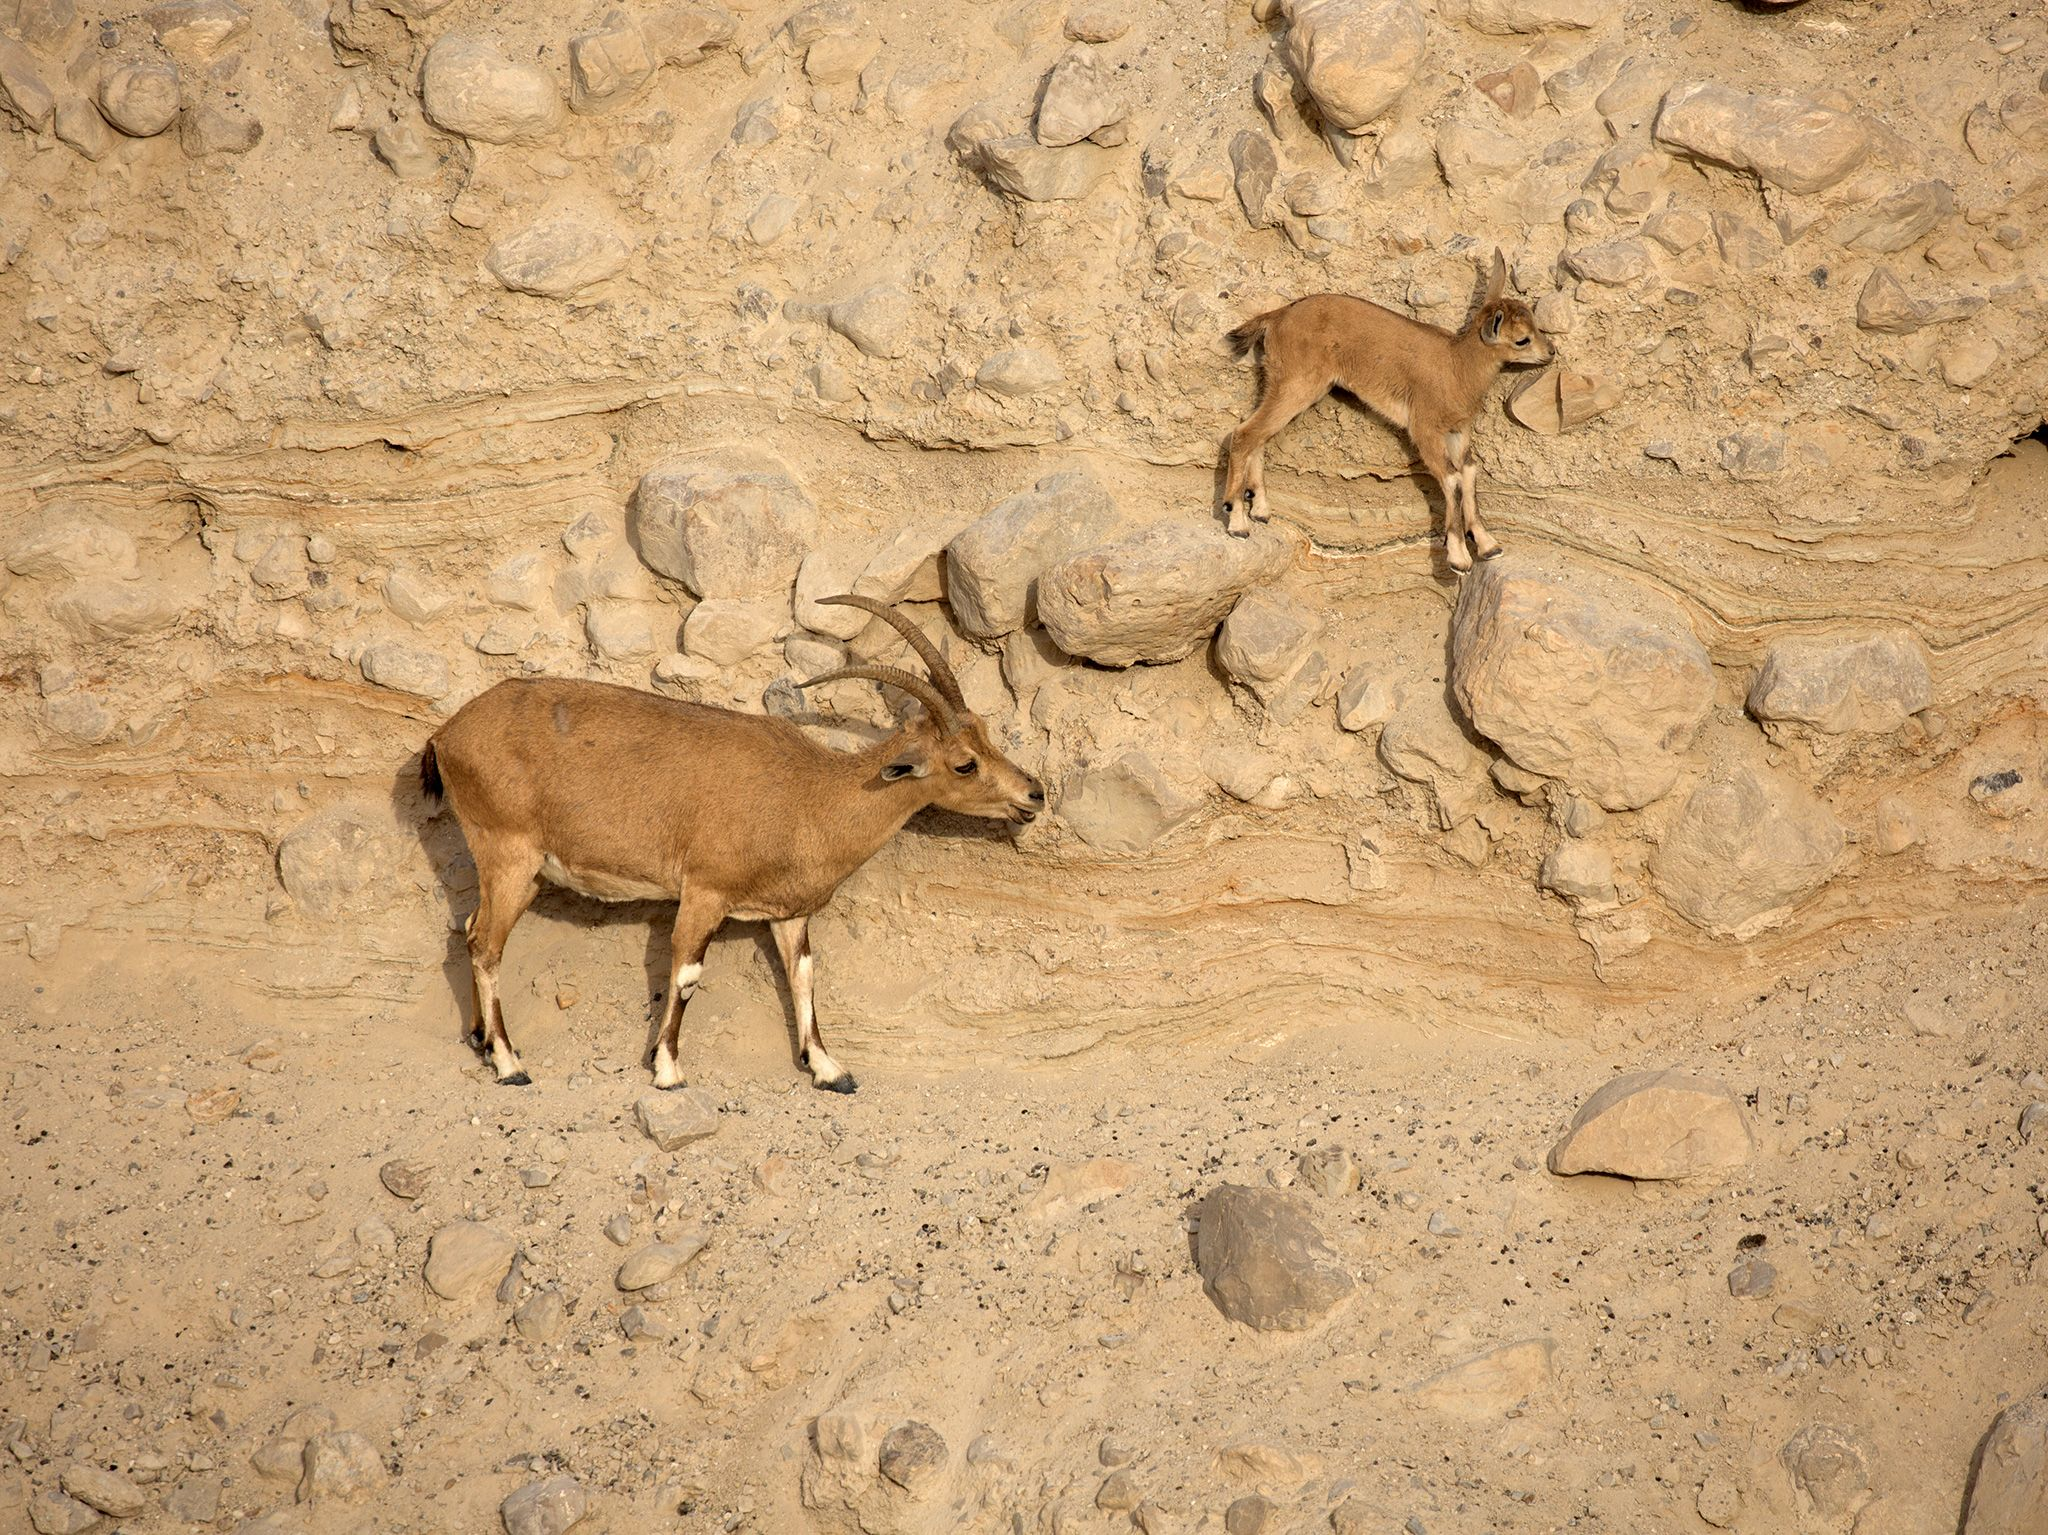 A pair of Nubian ibex (Capra nubiana) scale high cliffs in Israel's Judean Desert. This pair are... [Photo of the day - April 2019]